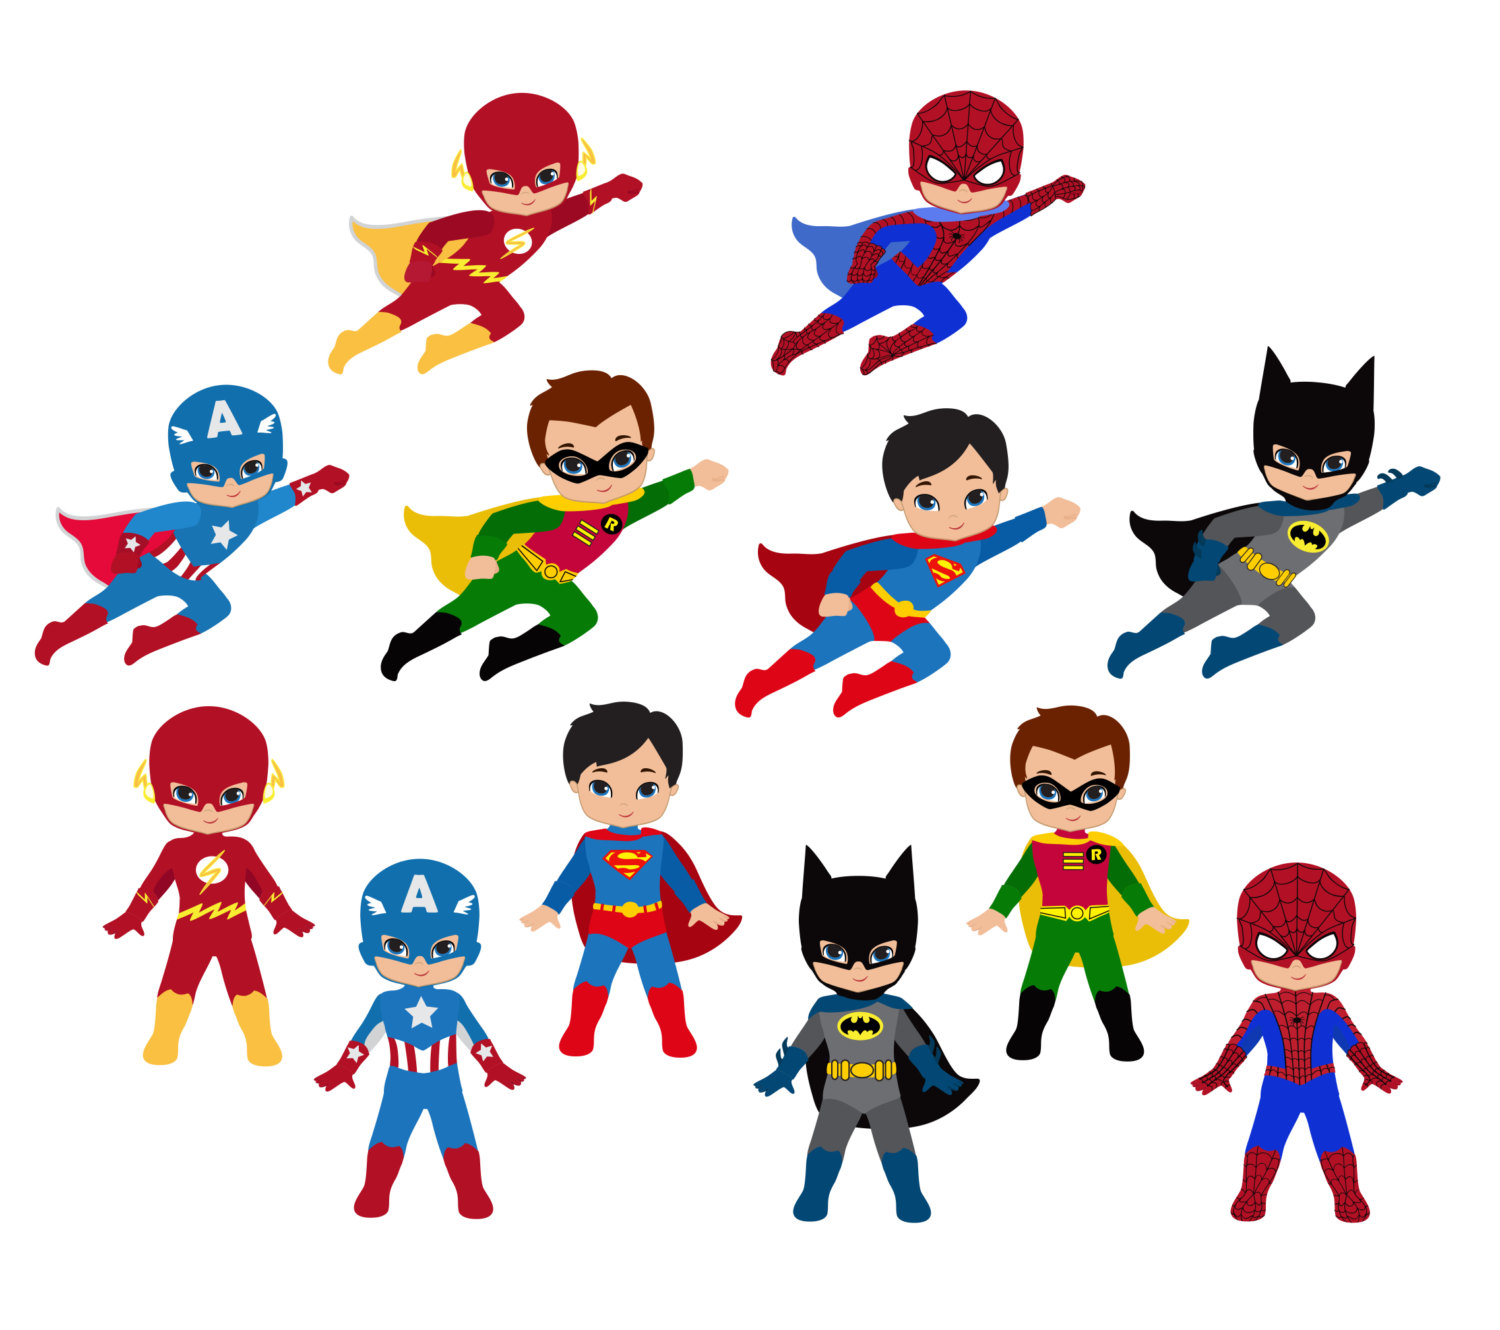 free superhero clipart | Fonts/Clipart freebies | Pinterest | Teaching, Clip art and Boys